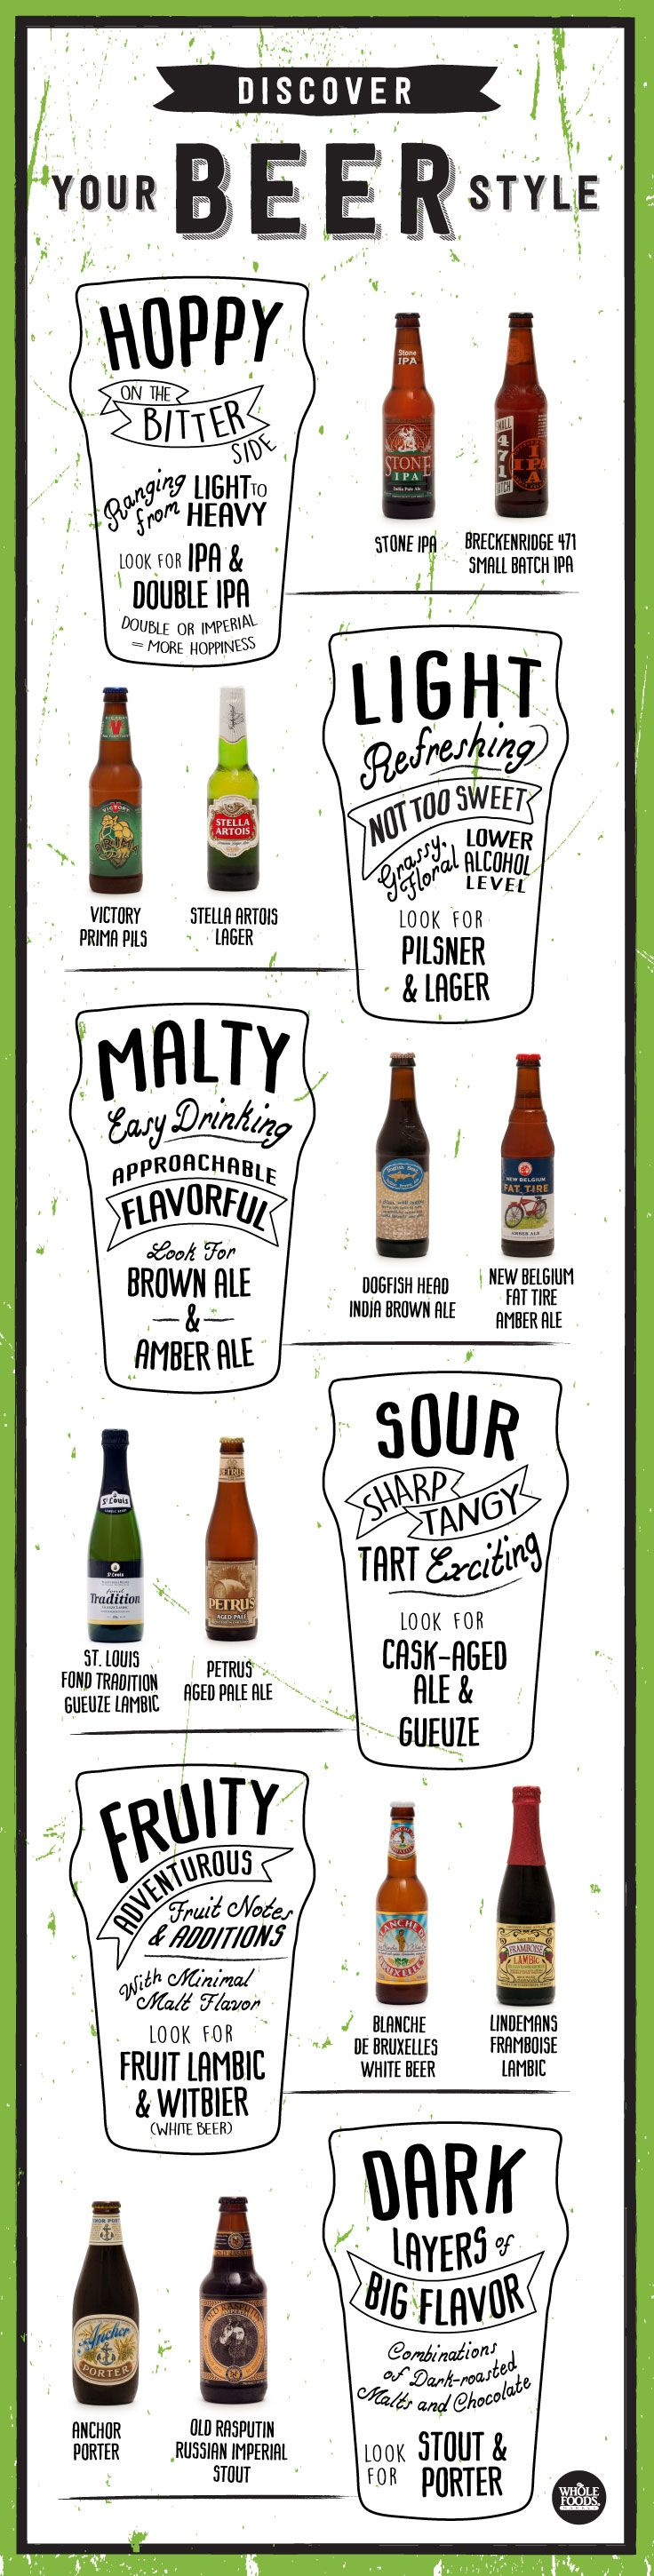 Le Meilleur Cheers For Beers Cheers Pinterest Bière Artisanale Ce Mois Ci